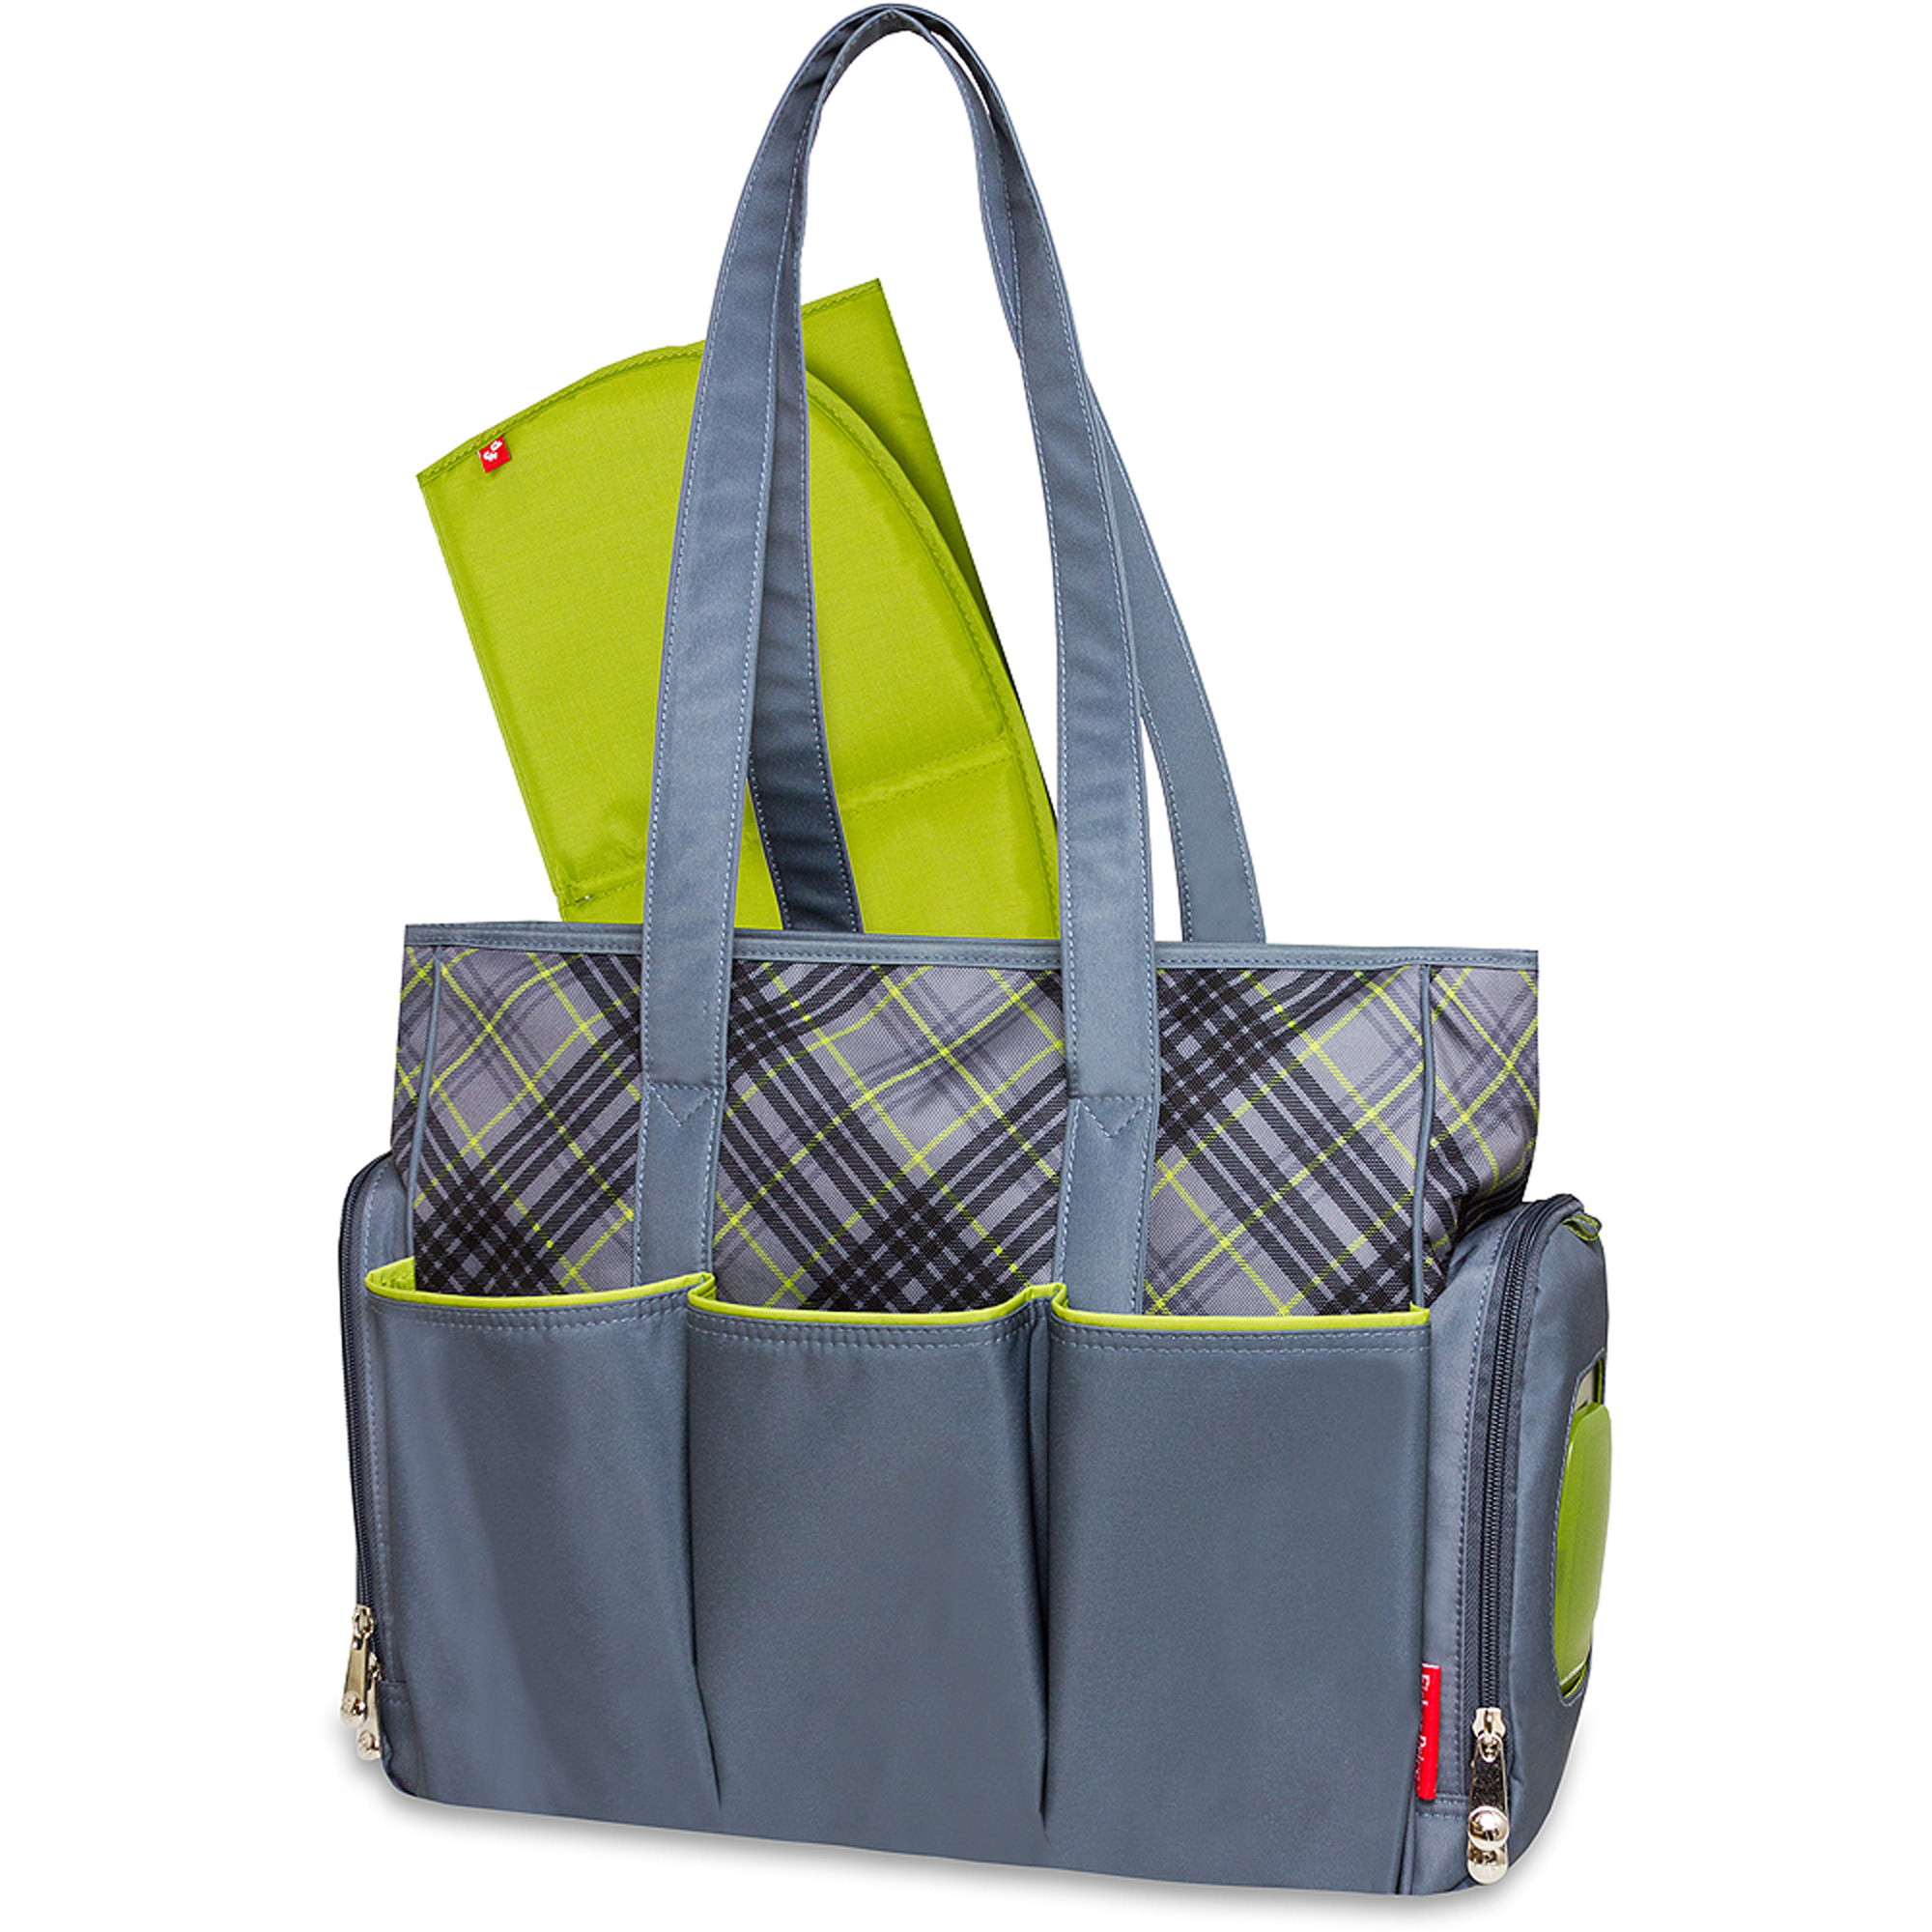 Fisher-Price Tote Diaper Bag with Fastfinder Pocket System, Plaid